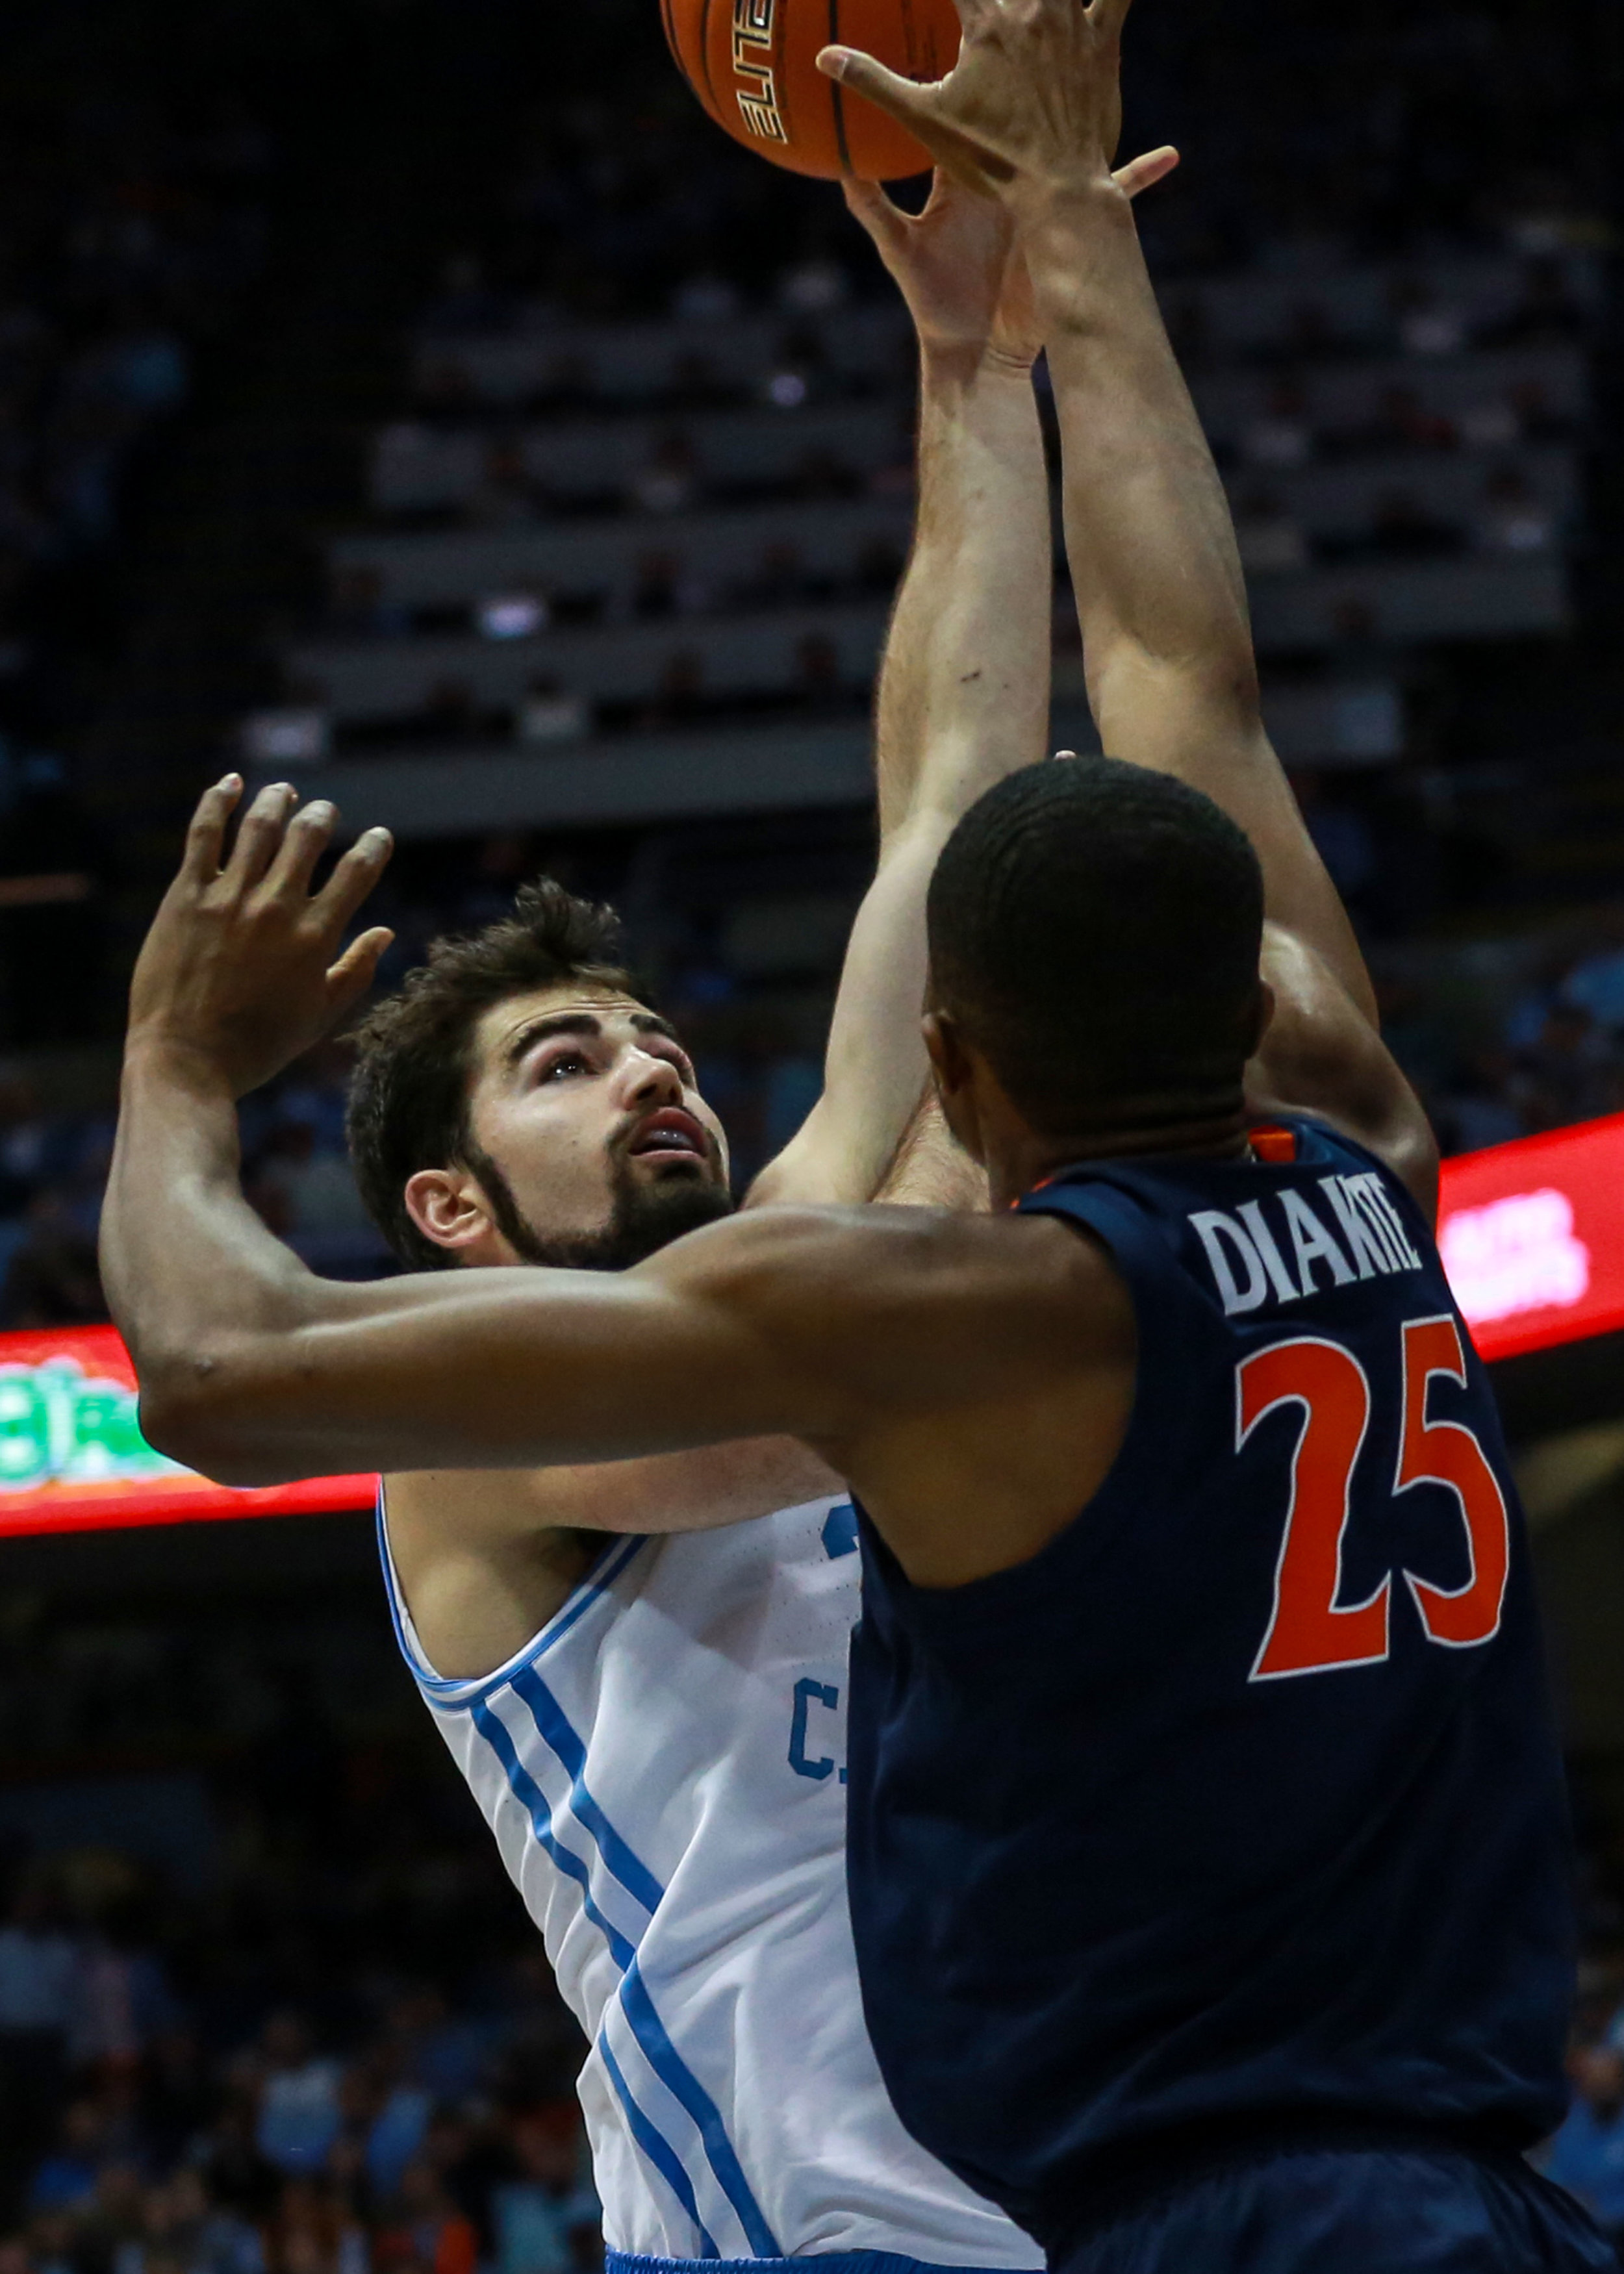 Luke Maye goes up for a shot against UVA's Mamdi Diakite. The senior forward struggled against the Cavaliers, scoring just four points on 2-of-10 shooting. | Photo by Alex Kormann